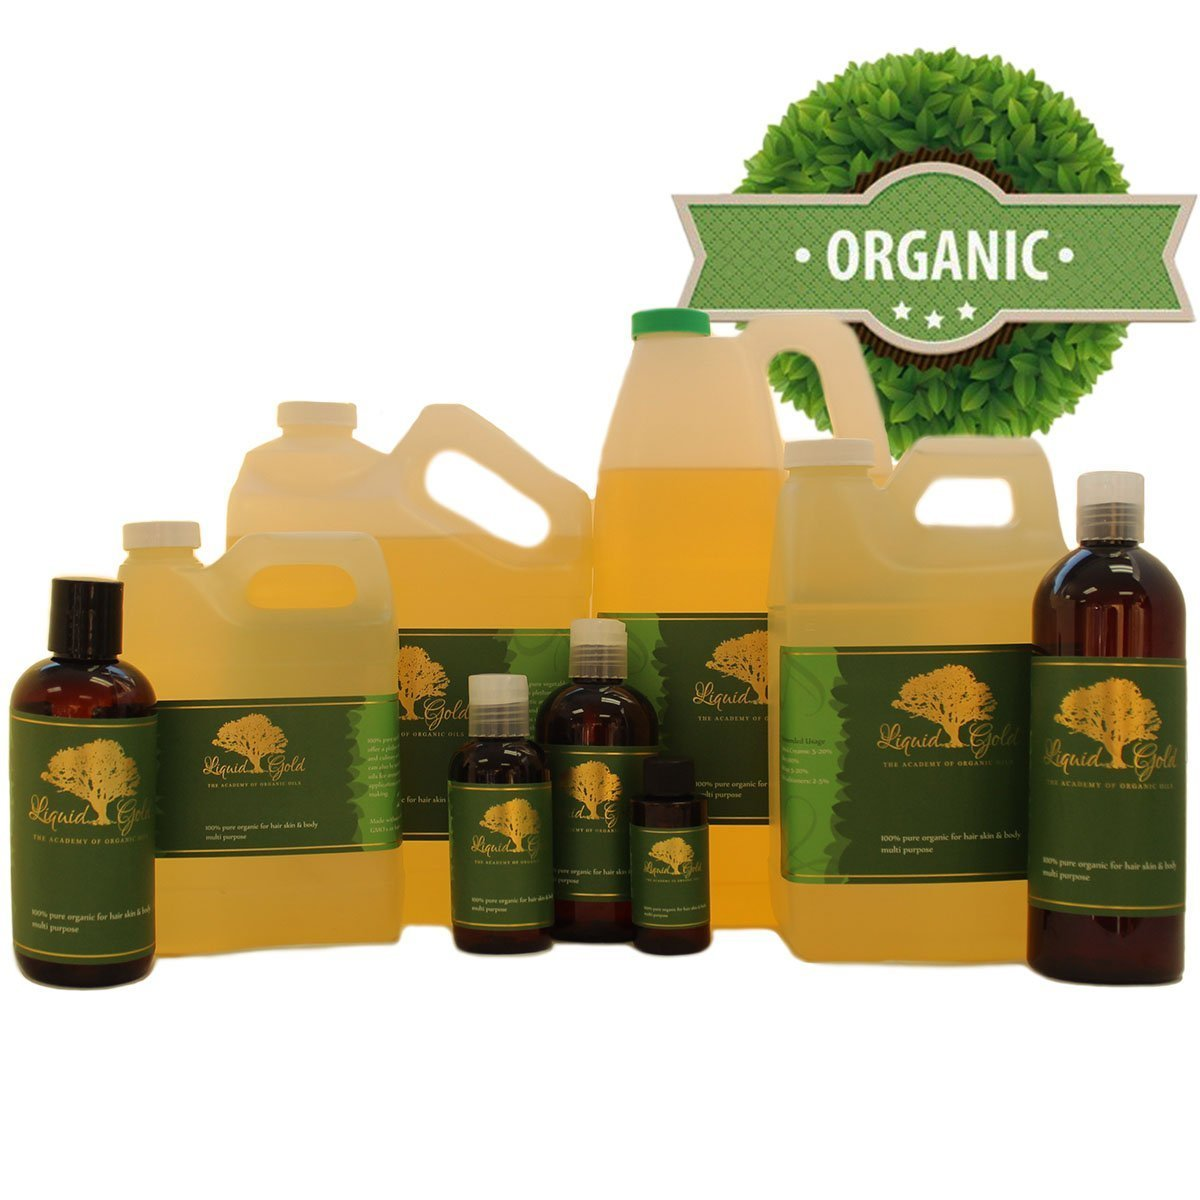 1 Gallon Premium Jamaican Black Castor Oil Organic Pure Natural Hair And Scalp Treatment 71NHLsivaQL._SL1200_